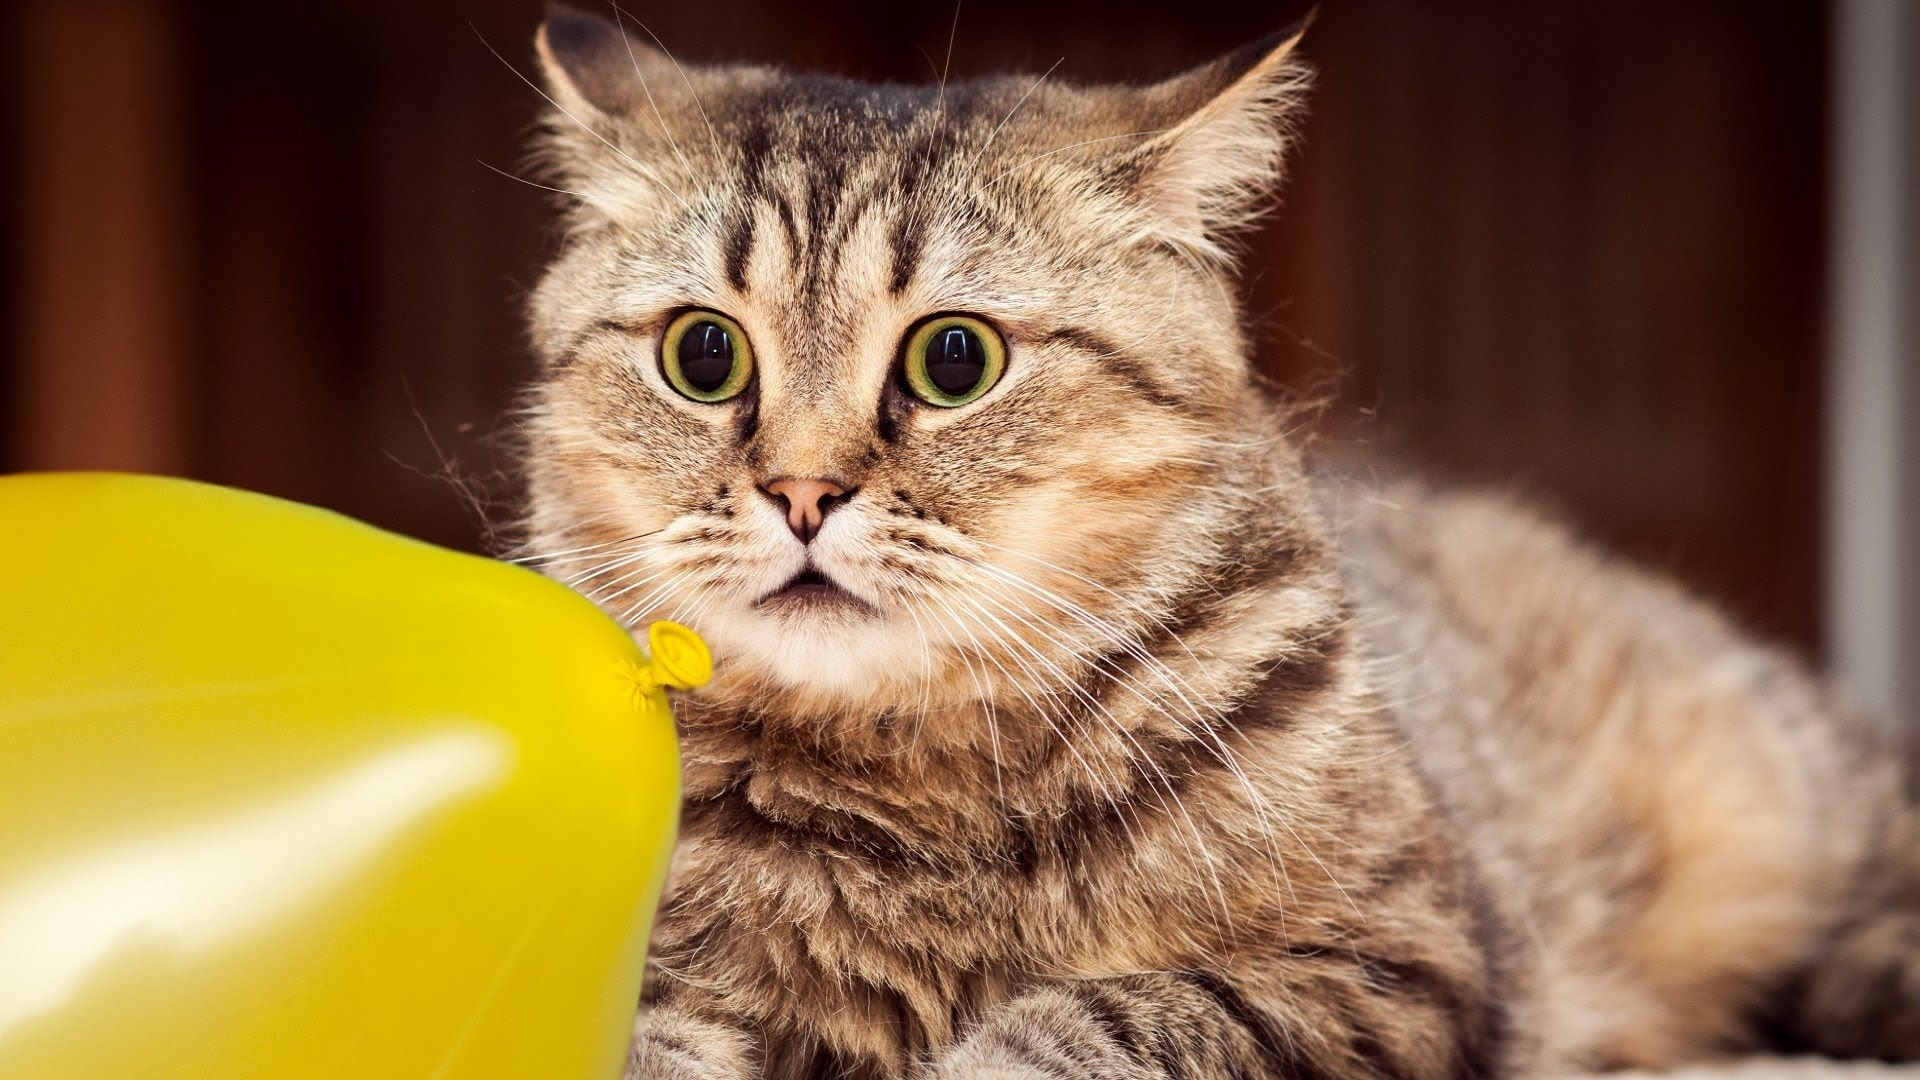 Cats And Dogs Vs Balloons Funny Animal Compilation Funny Cat Wallpaper Cat Wallpaper Kittens Funny